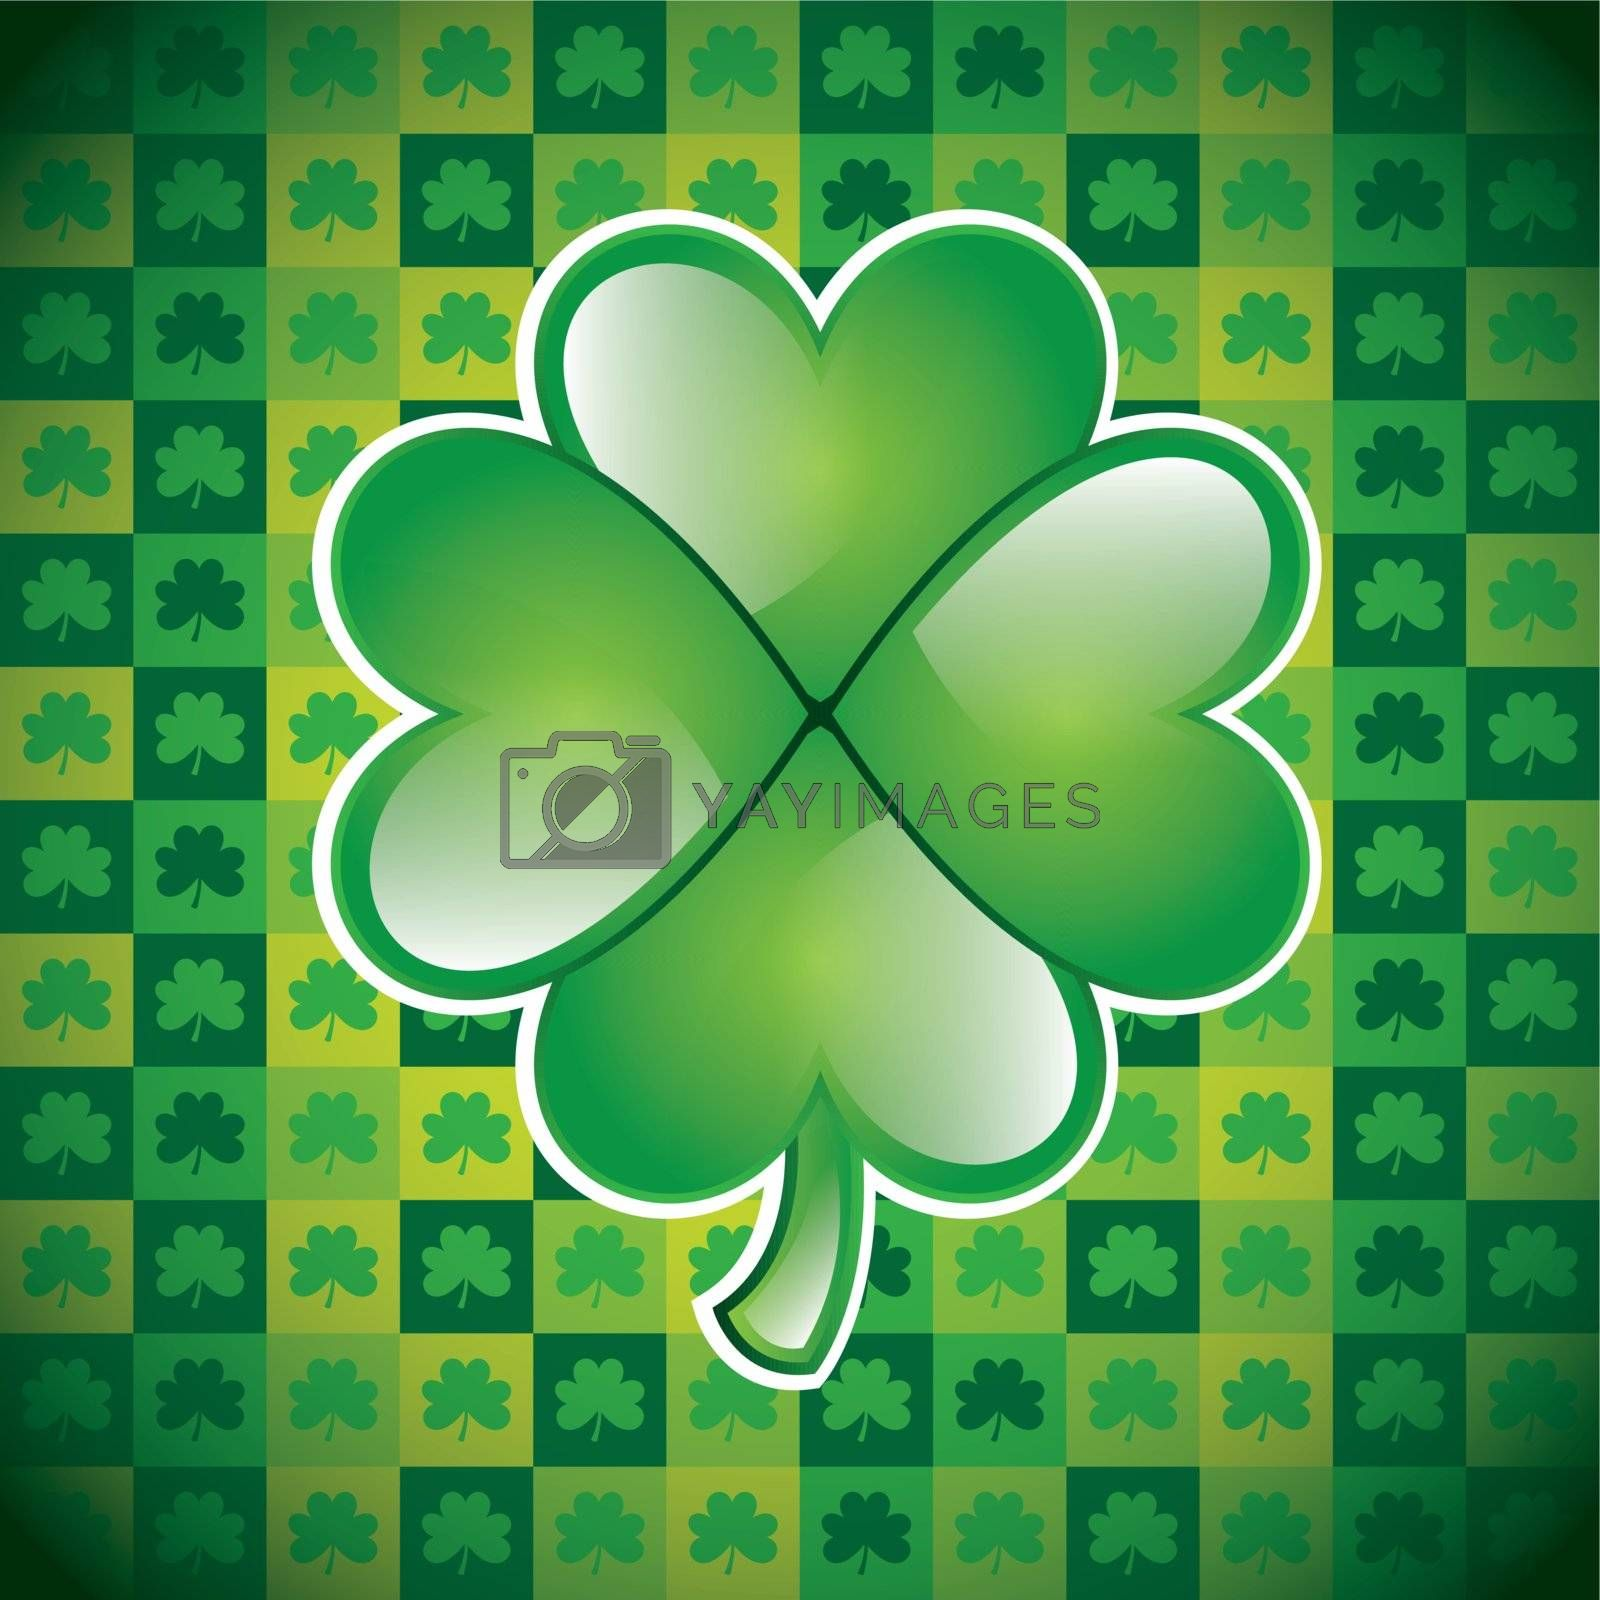 St Patricks day background with clover vector illustration